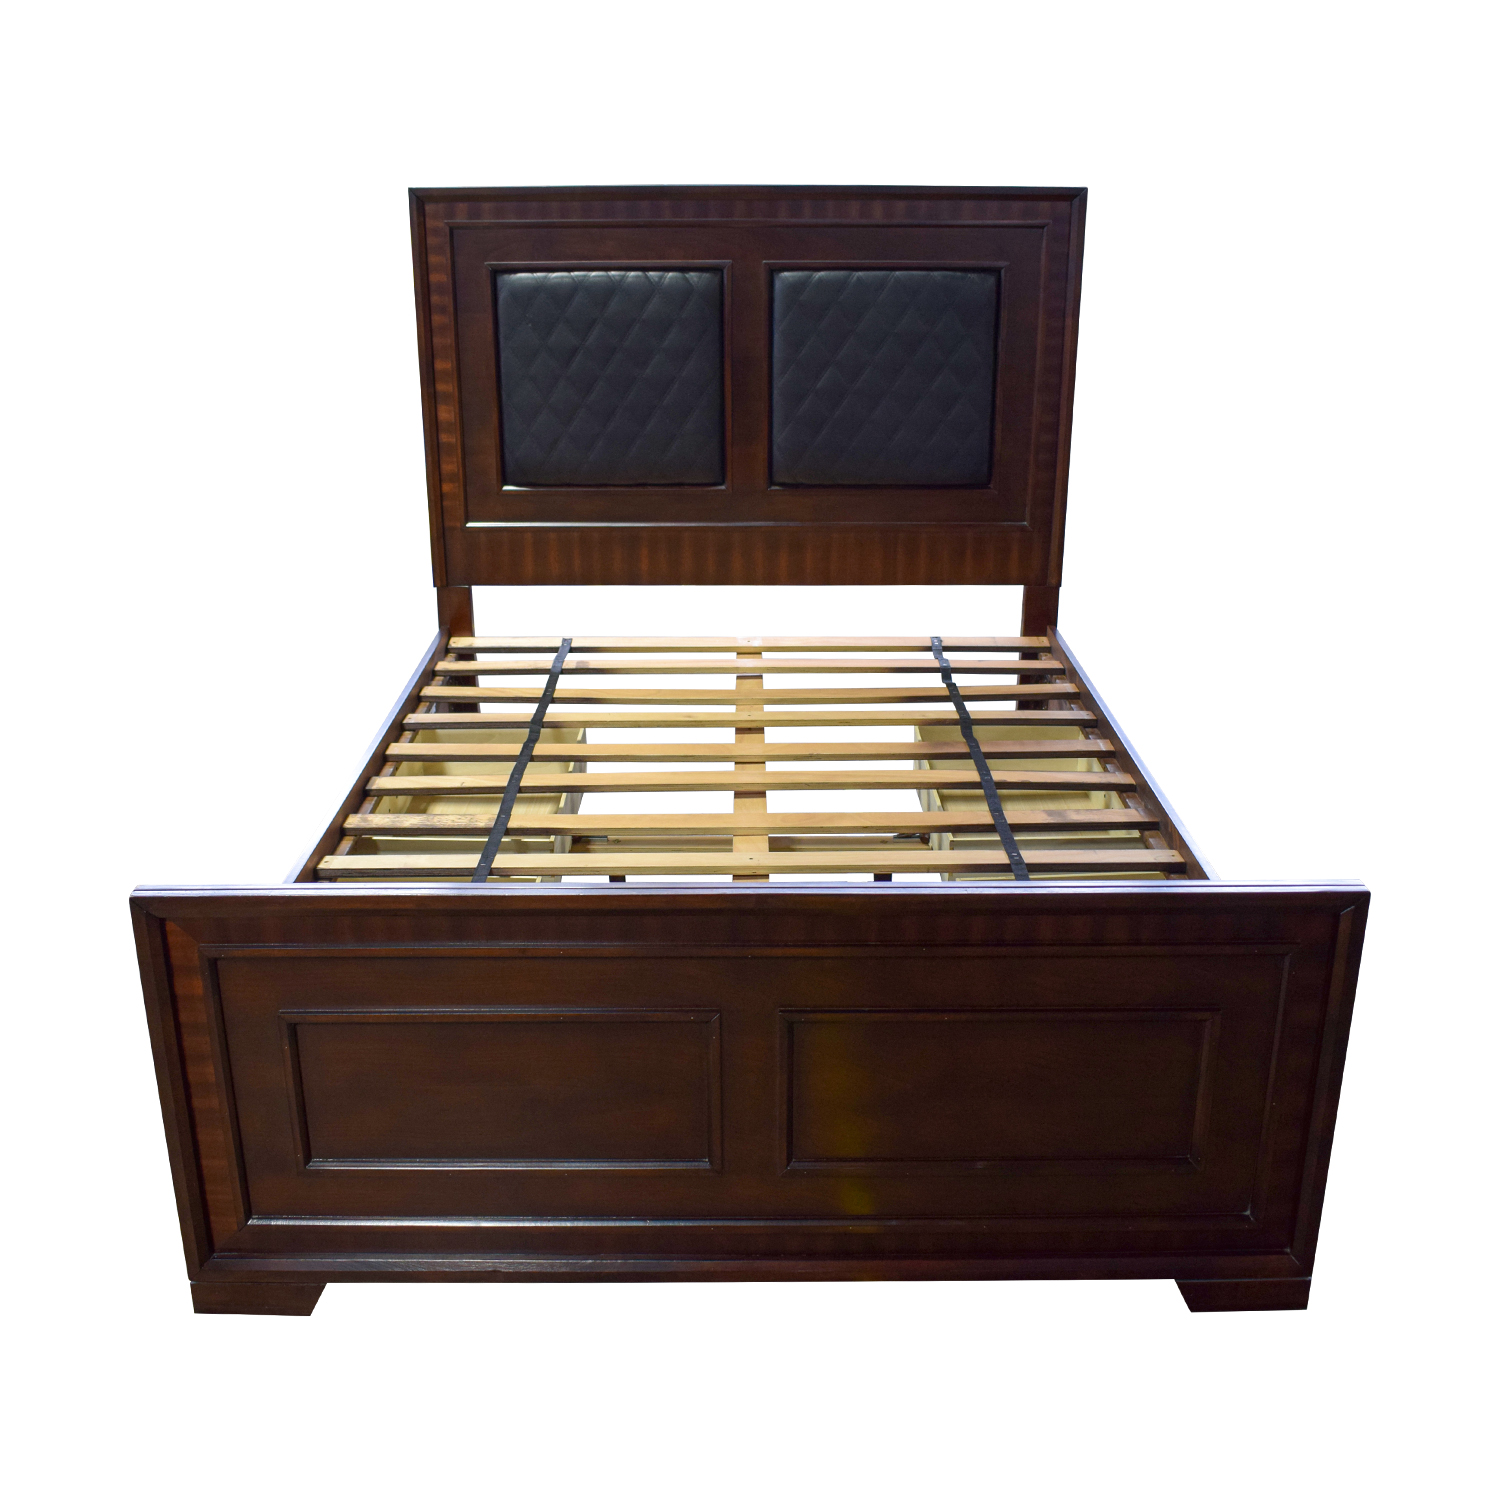 Bob's Furniture Bob's Furniture Jason Storage Queen Bed Frame on sale